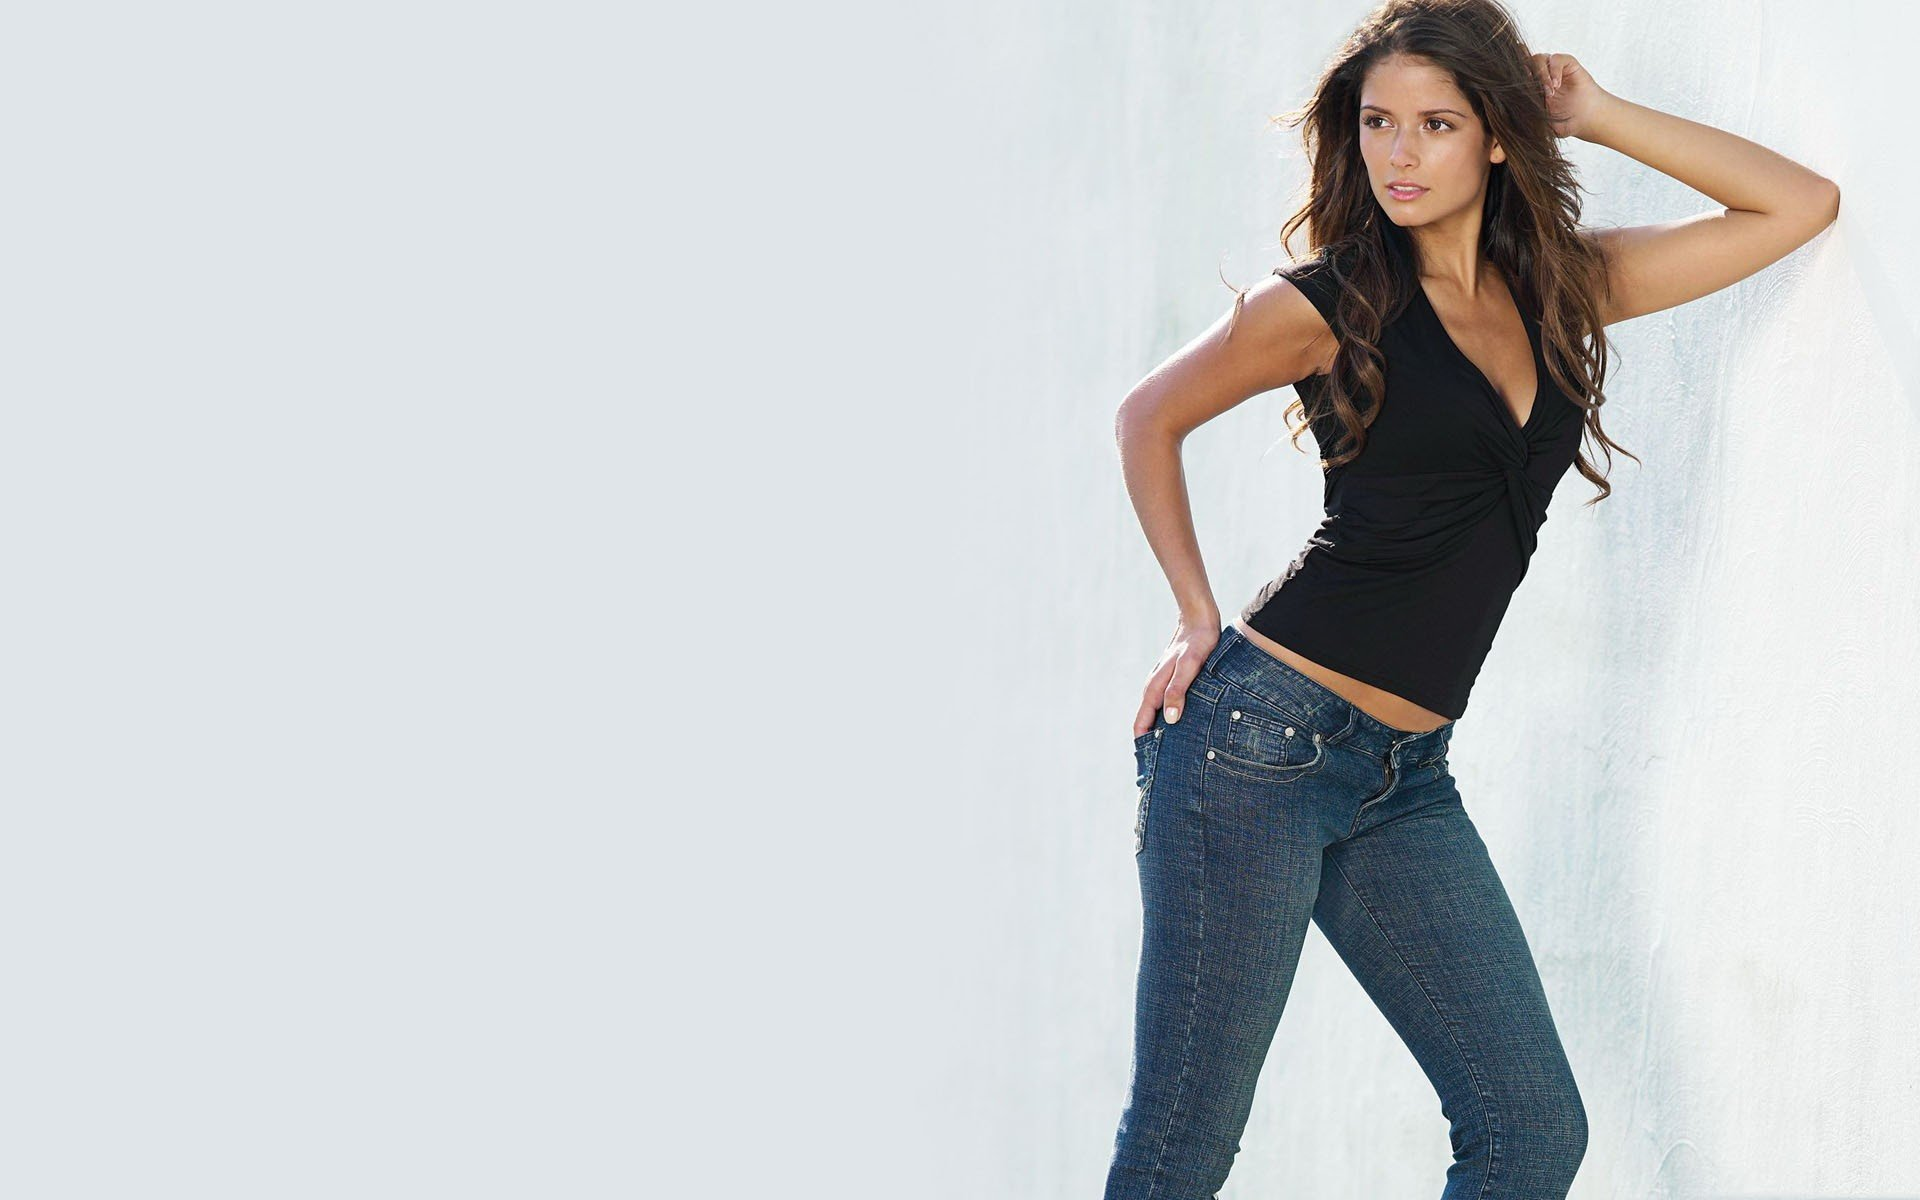 Awesome Carla Ossa free wallpaper ID:249956 for hd 1920x1200 desktop